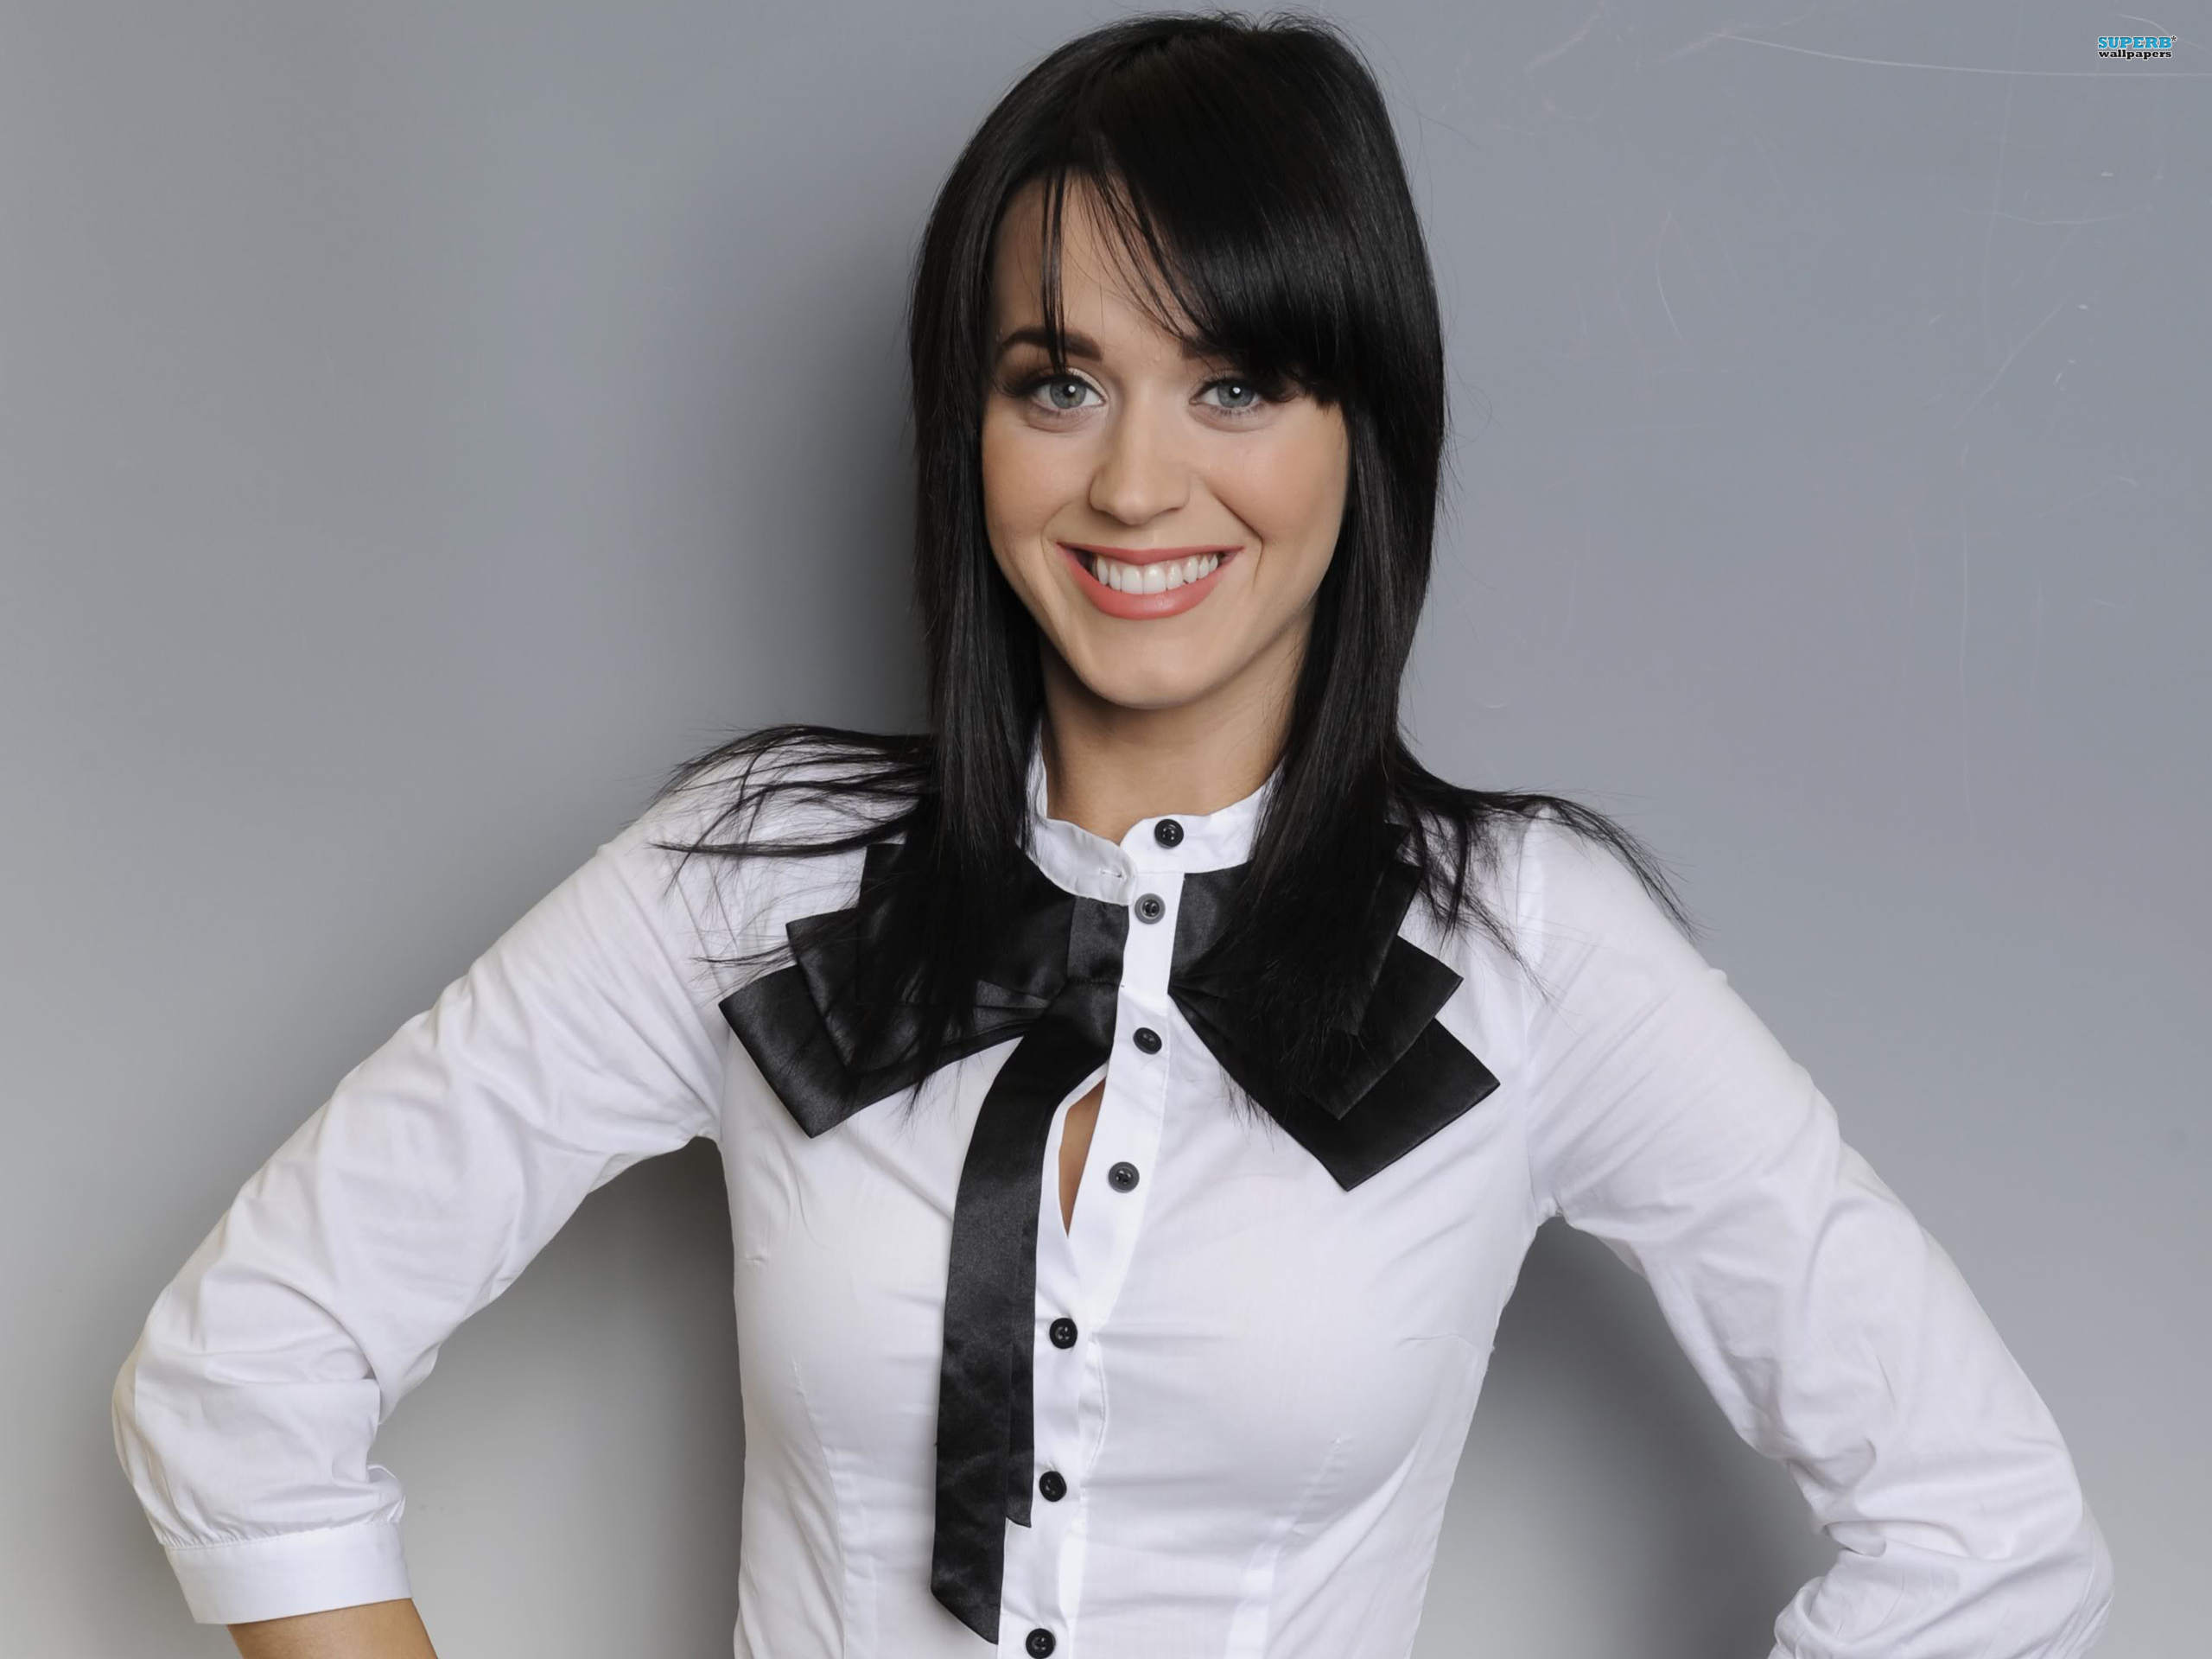 Katy Perry Hd Wallpaper Background Image 2560x1920 Id